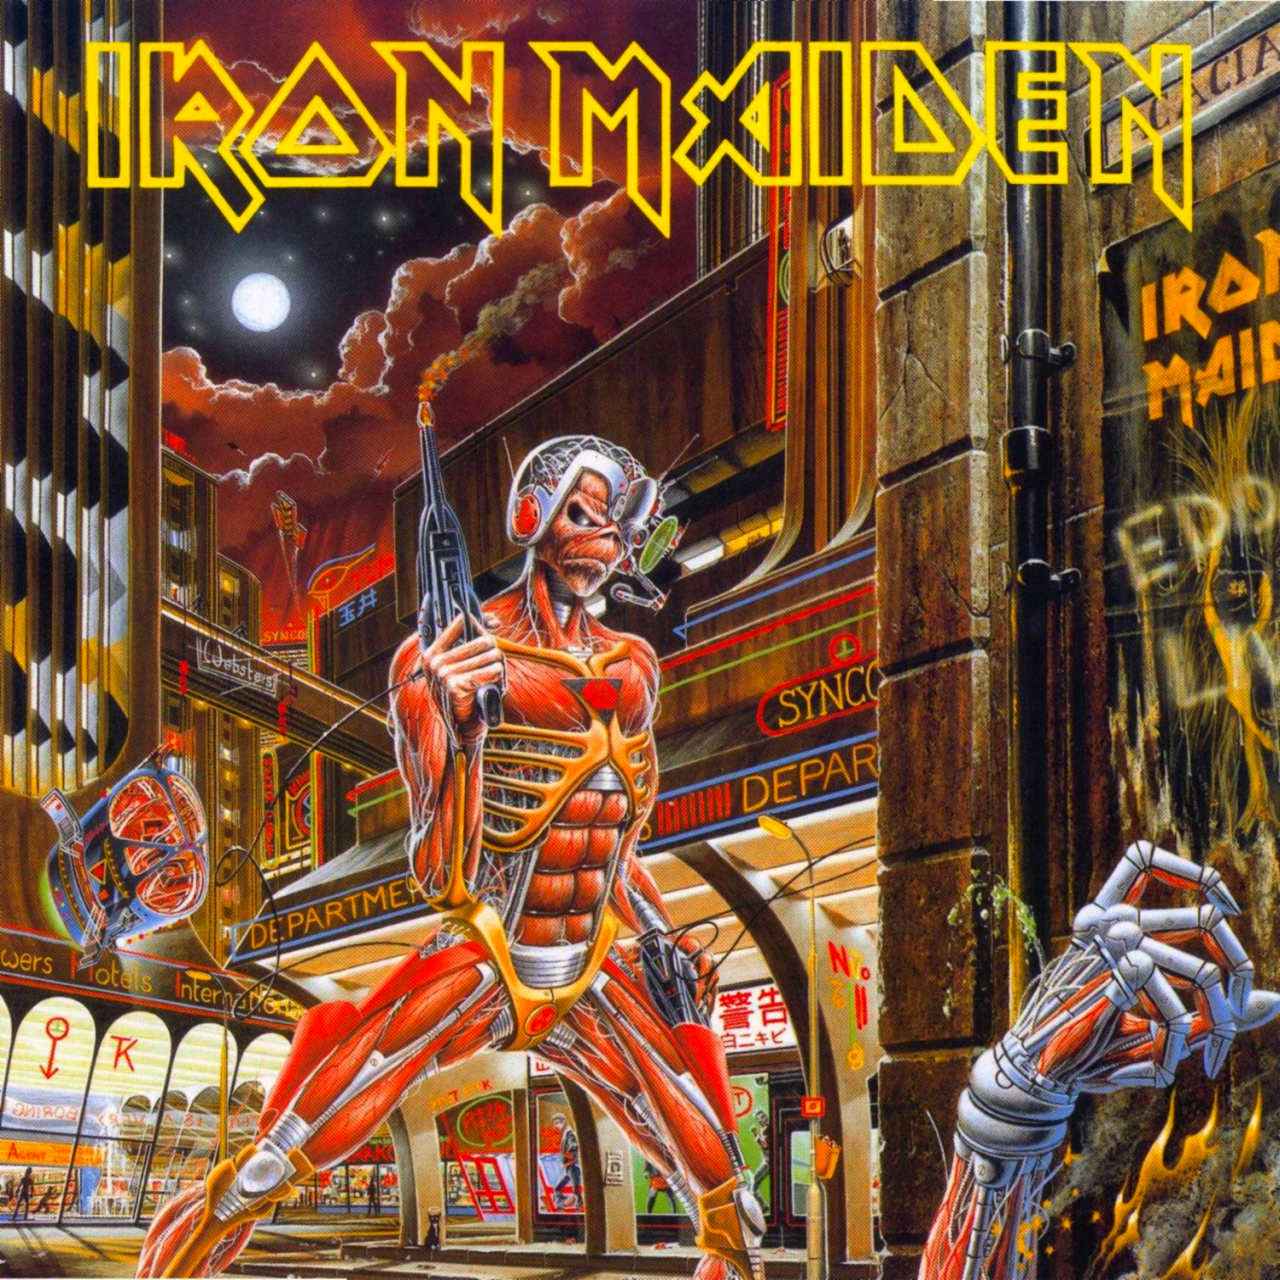 Classic Rock Covers: Iron Maiden - Somewhere in Time